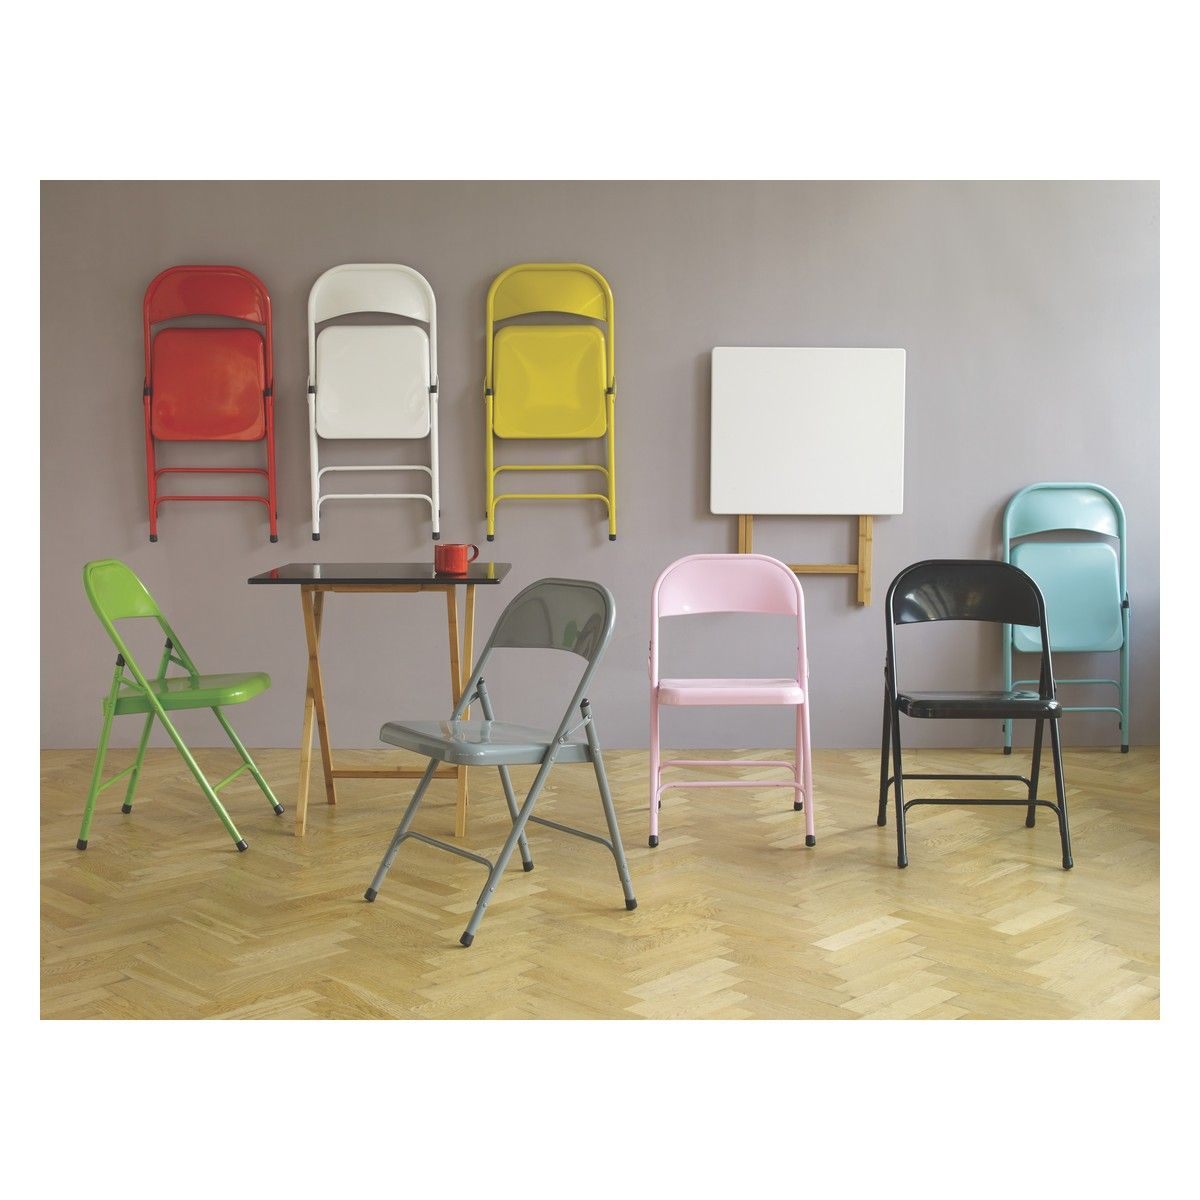 MACADAM Grey Metal Folding Chair Dining Room